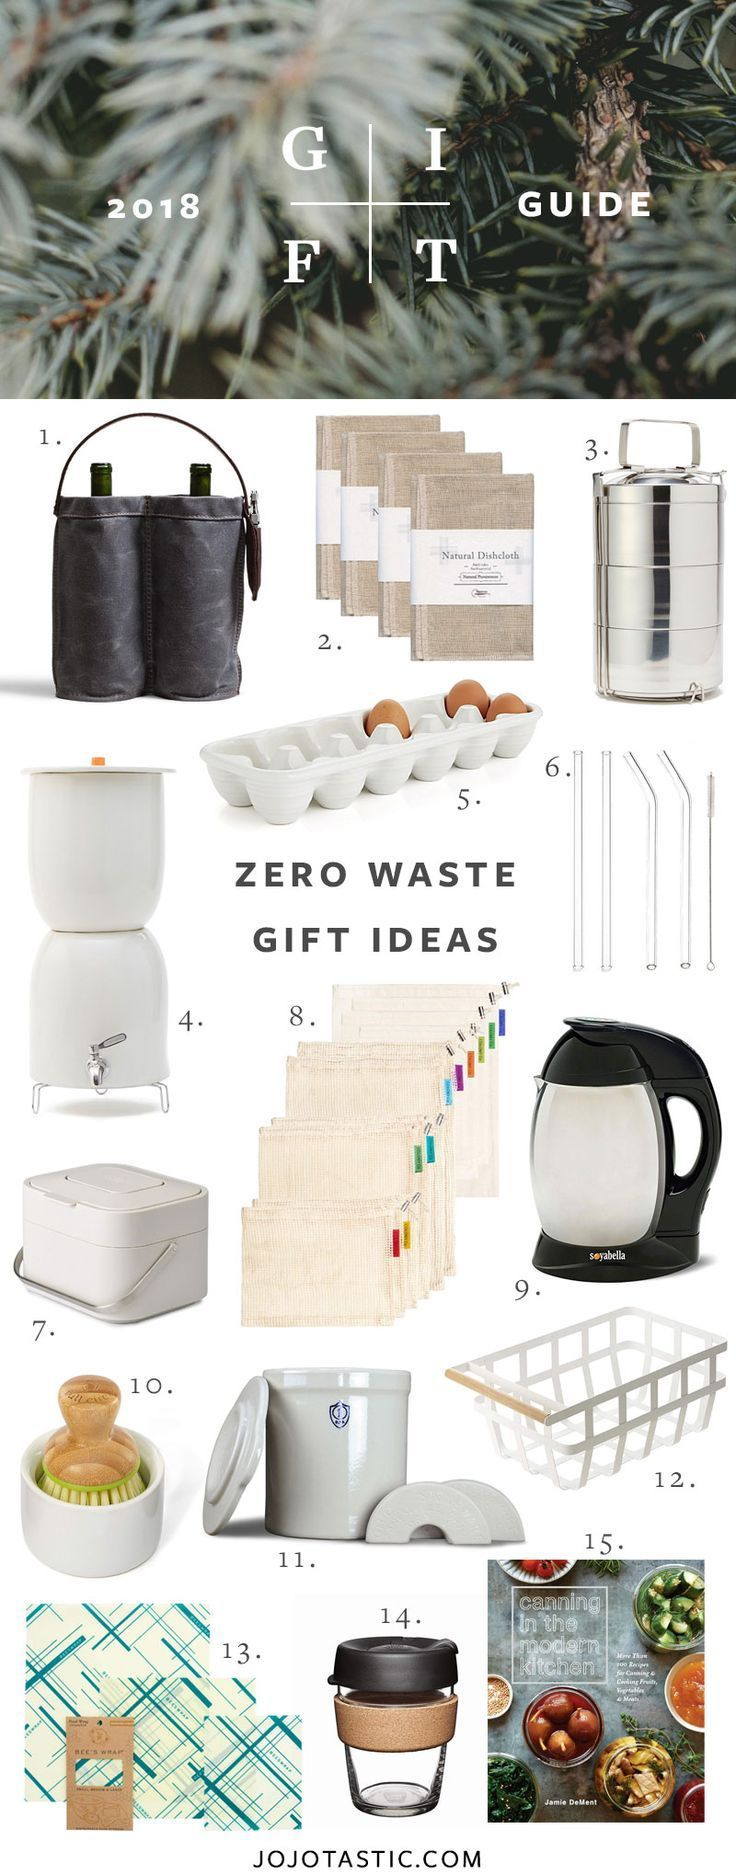 Zero Waste Gift Ideas for the Eco-Conscious, Gift Guide for Christmas & Holidays 2018 via jojotastic.com #giftguide #giftidea #giftgiving #gifts #presents #christmaspresents #christmasgiftideas #christmasgift #wellness #zerowaste #ecoliving #greenliving